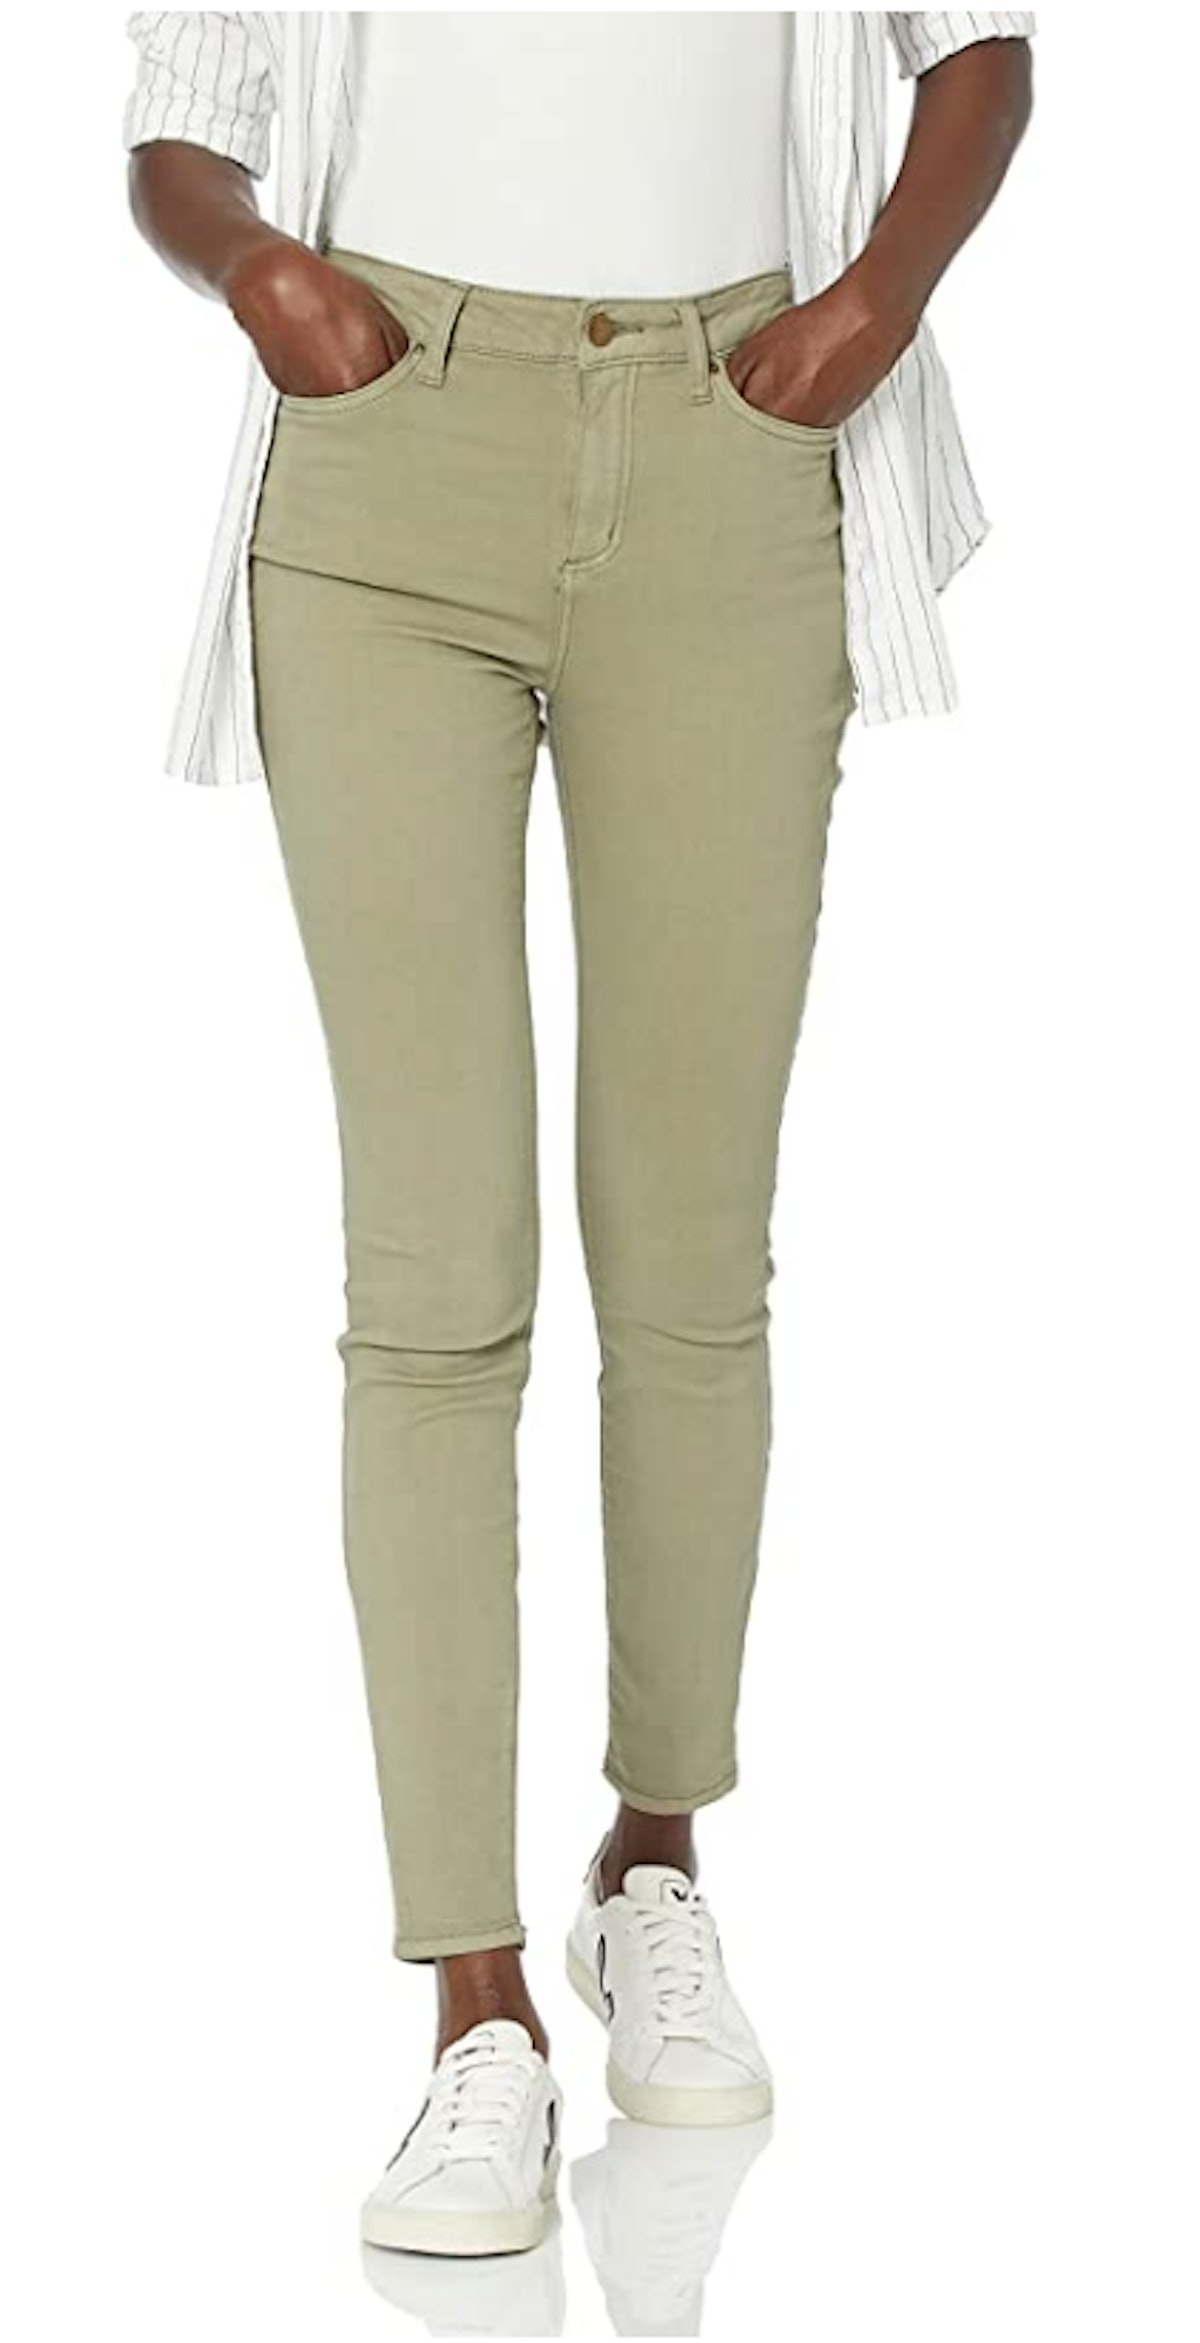 Daily Ritual's high-rise colored skinny jeans.